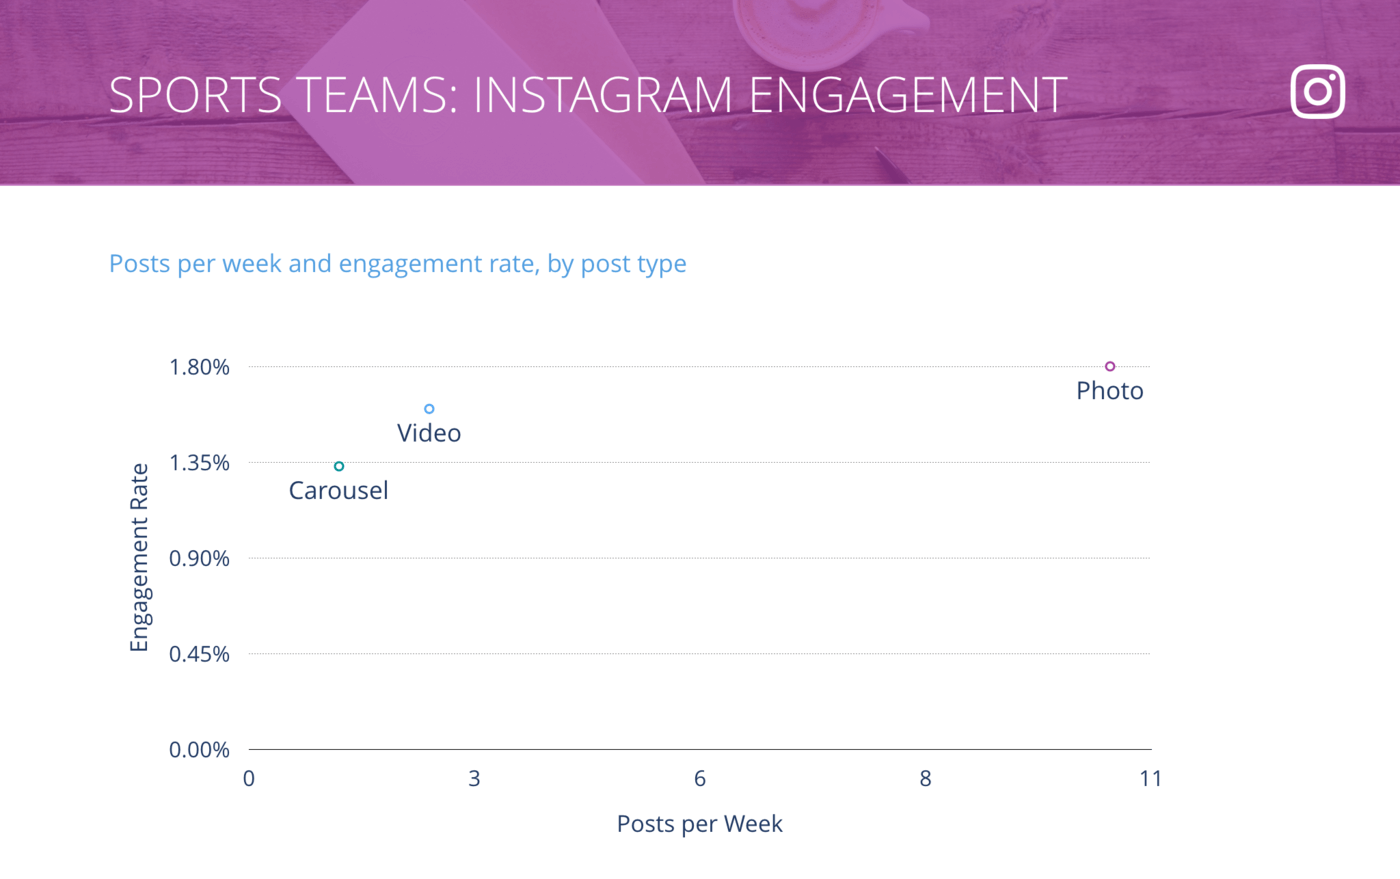 slide for Instagram Posts per Week vs. Engagement Rate per Post, Sports Teams